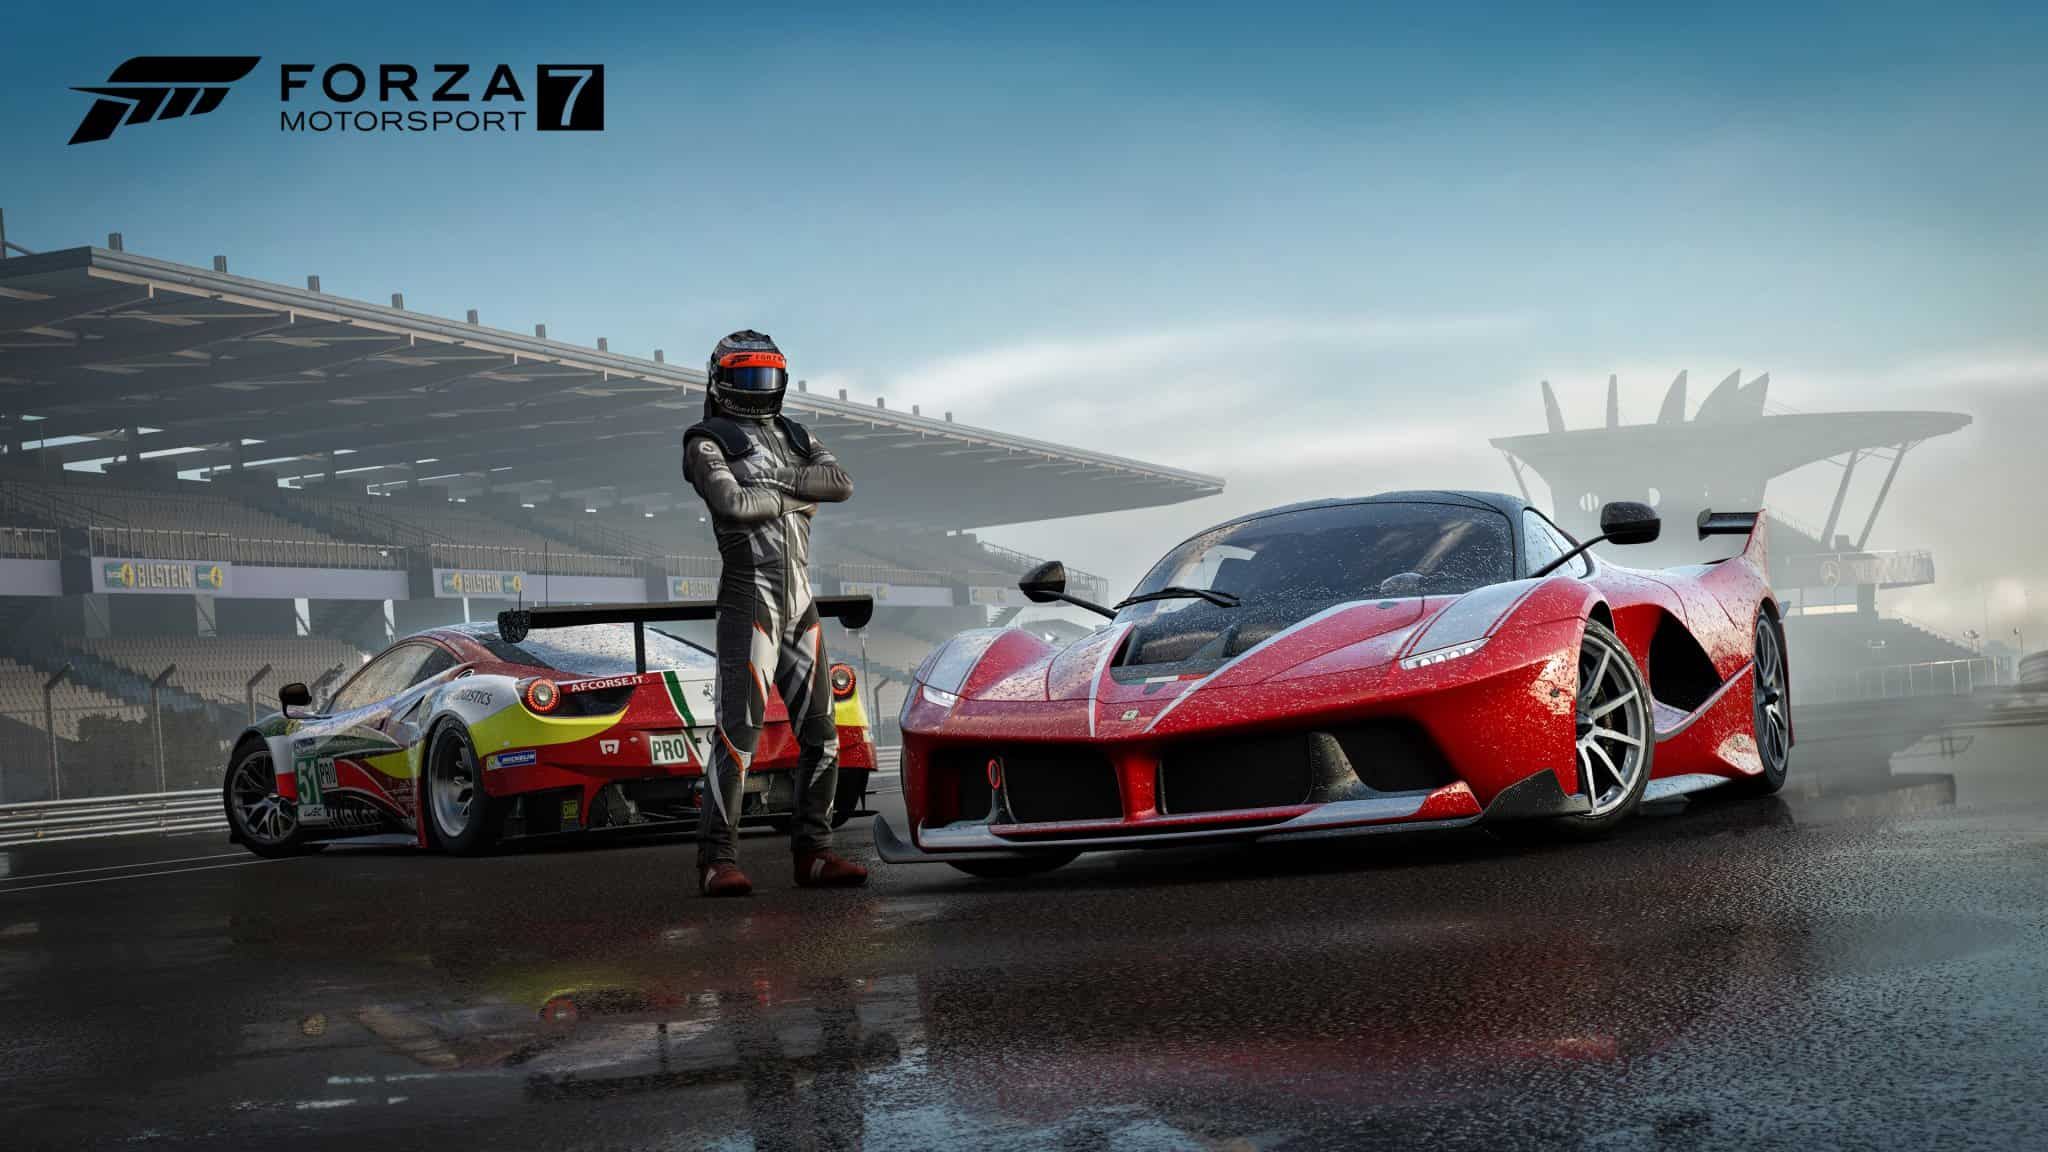 Forza Motorsport 7 Gets Official Demo On Xbox One And PC